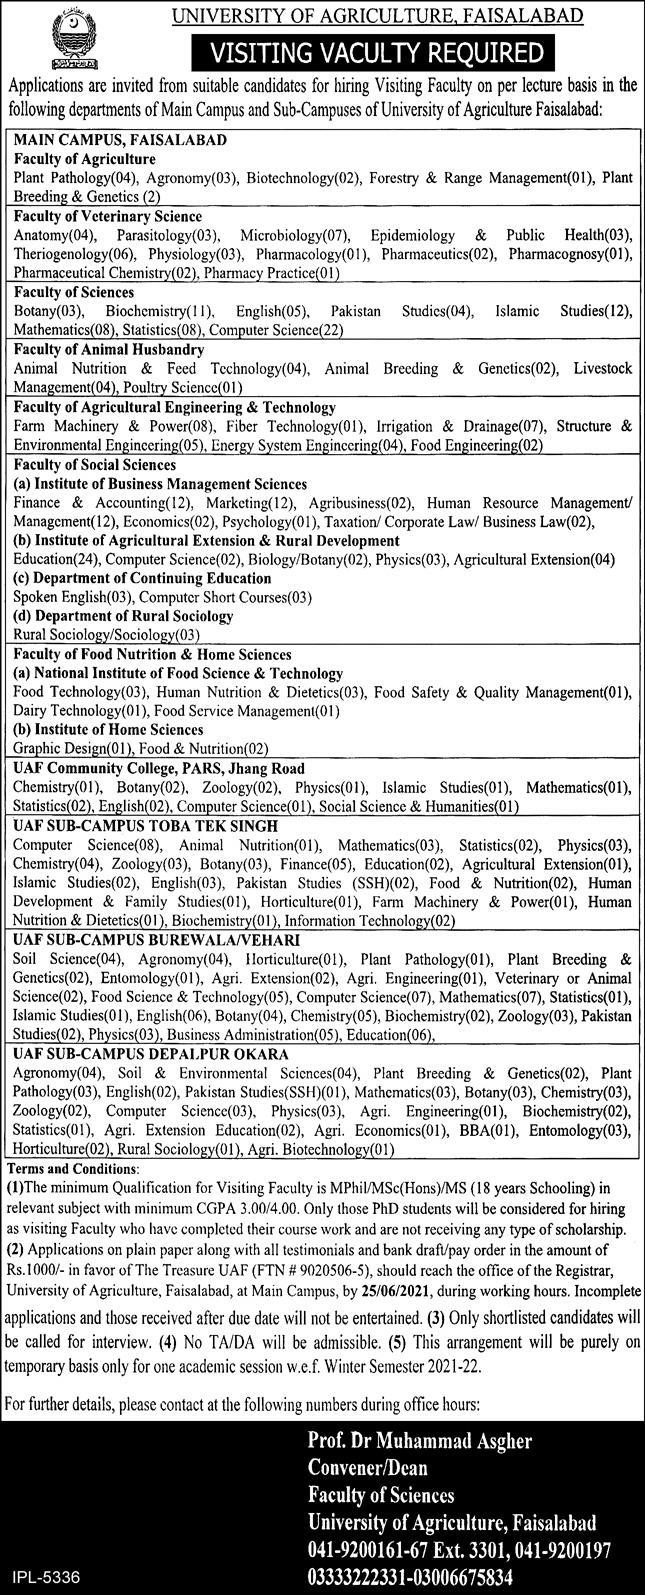 University of Agriculture Visiting Faculty Jobs 2021